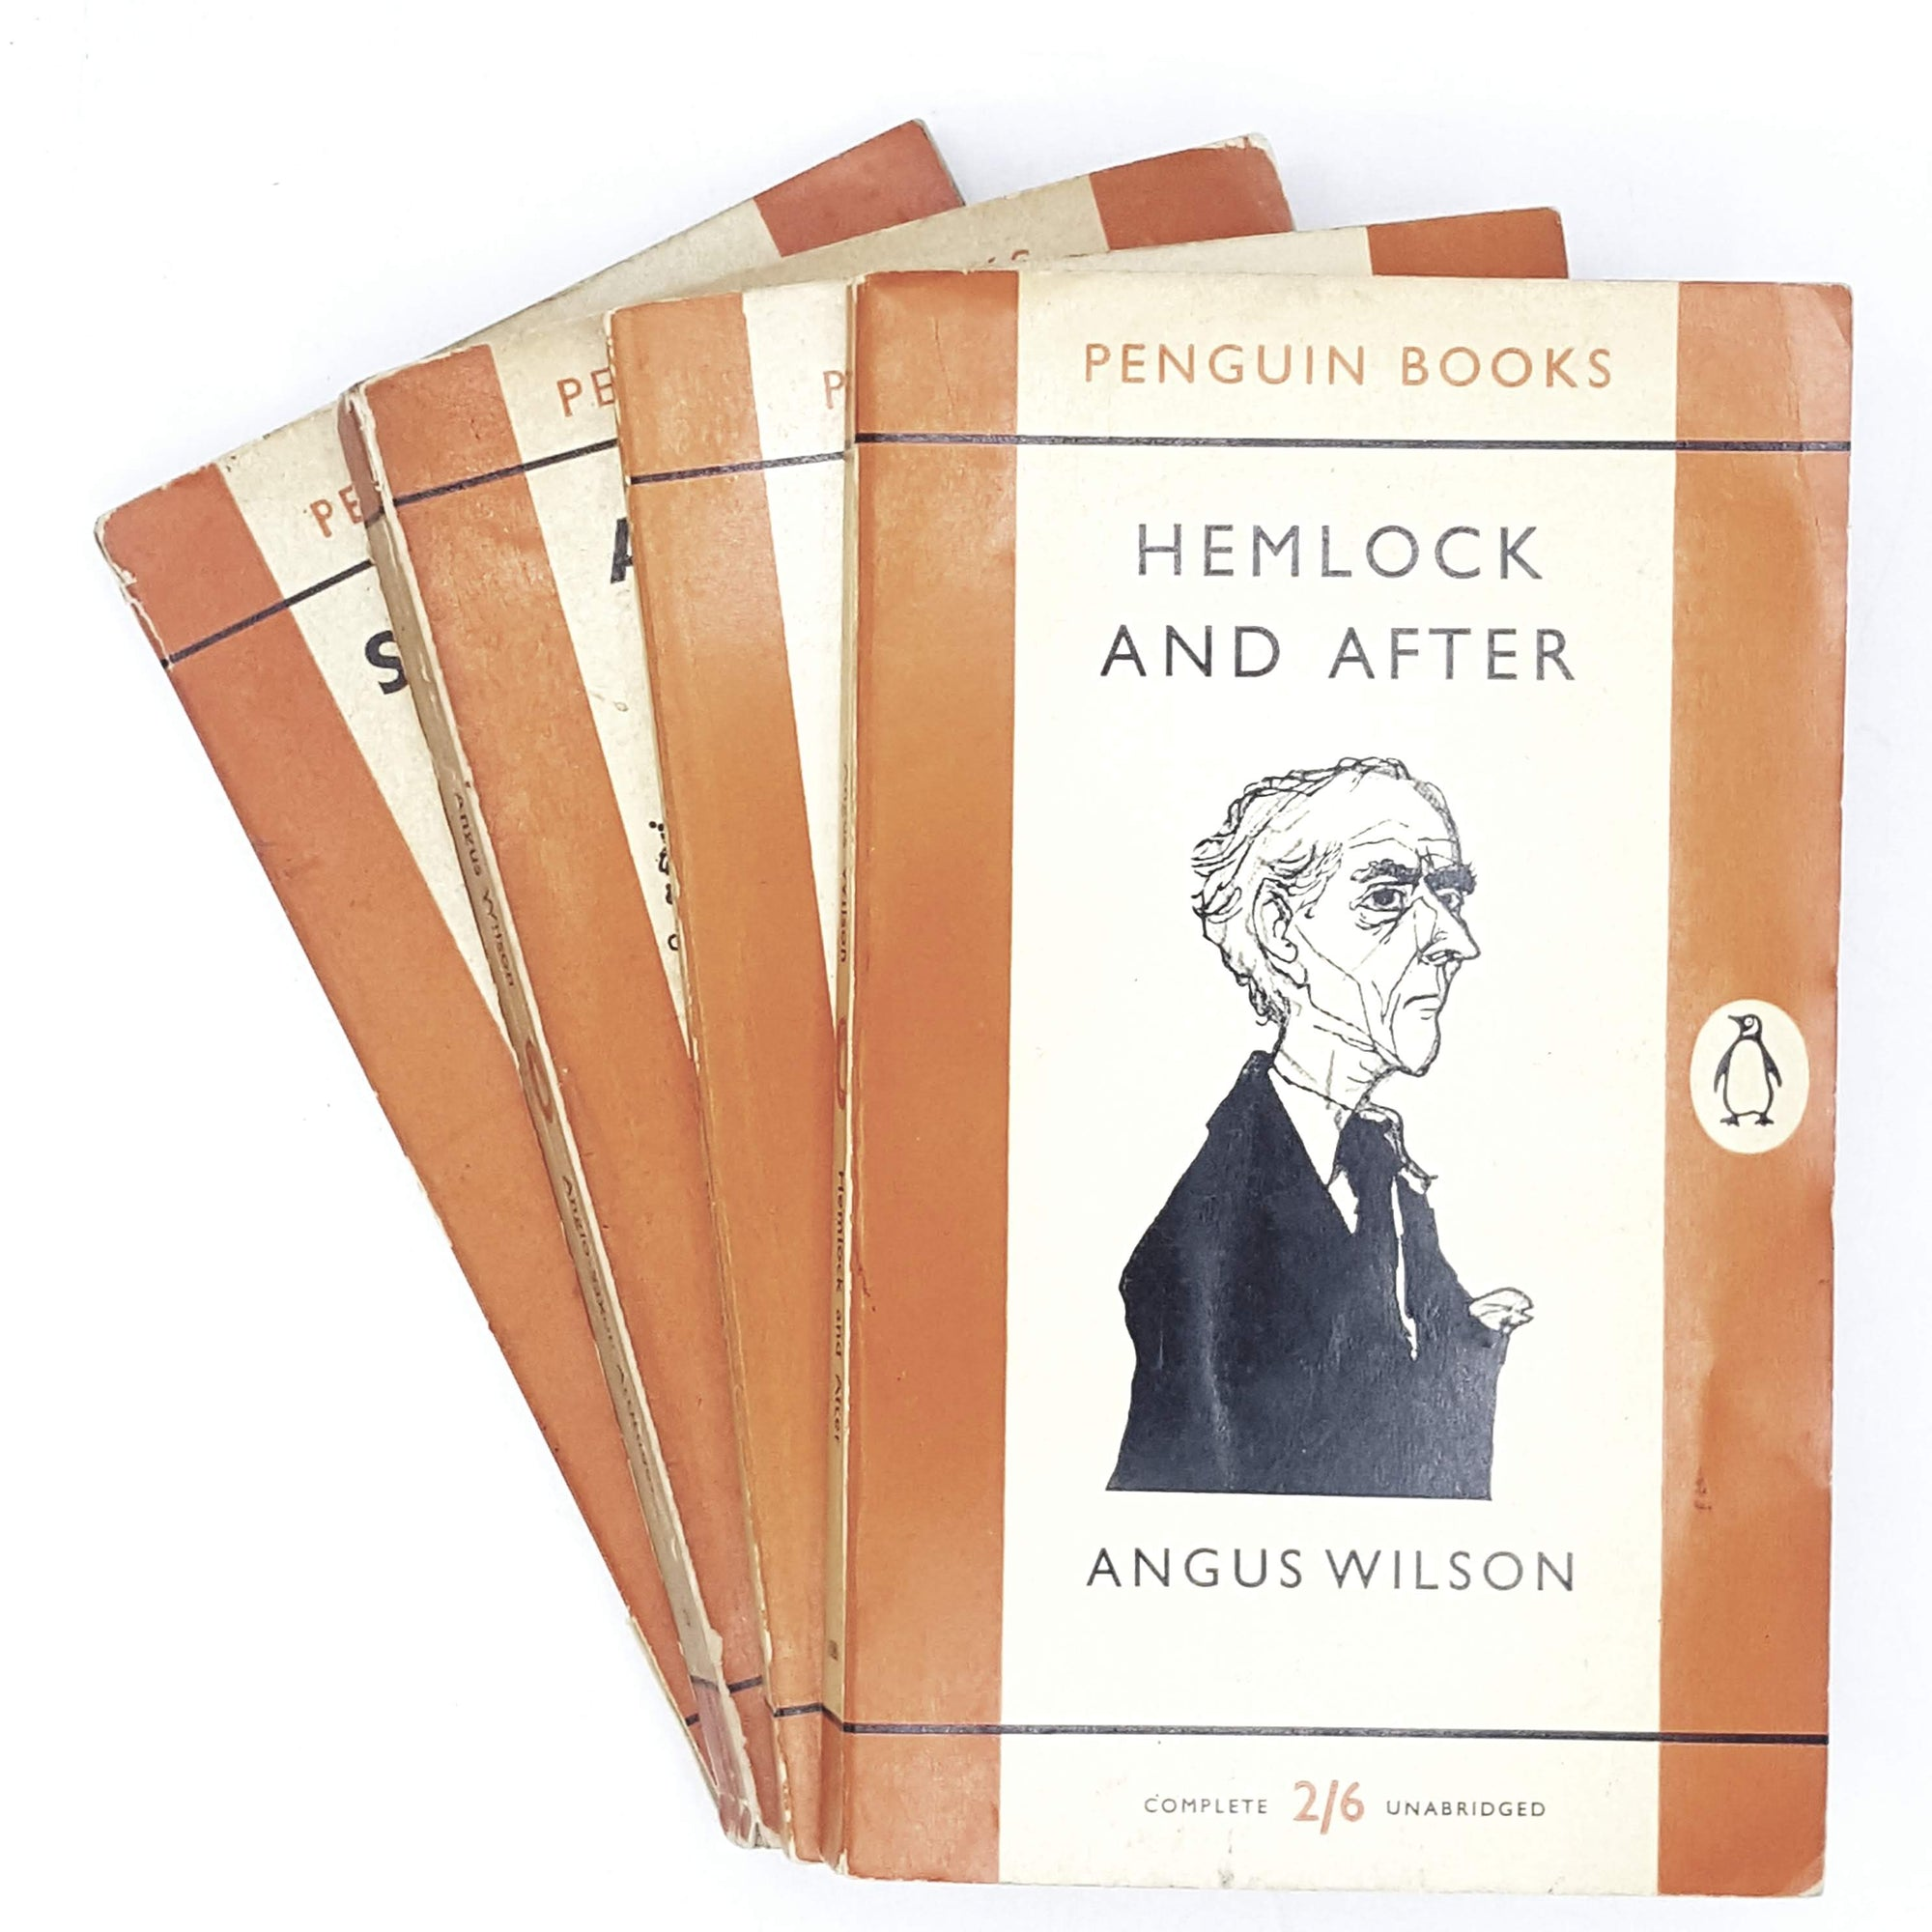 collection-angus-wilson-penguin-classic-books-country-house-library